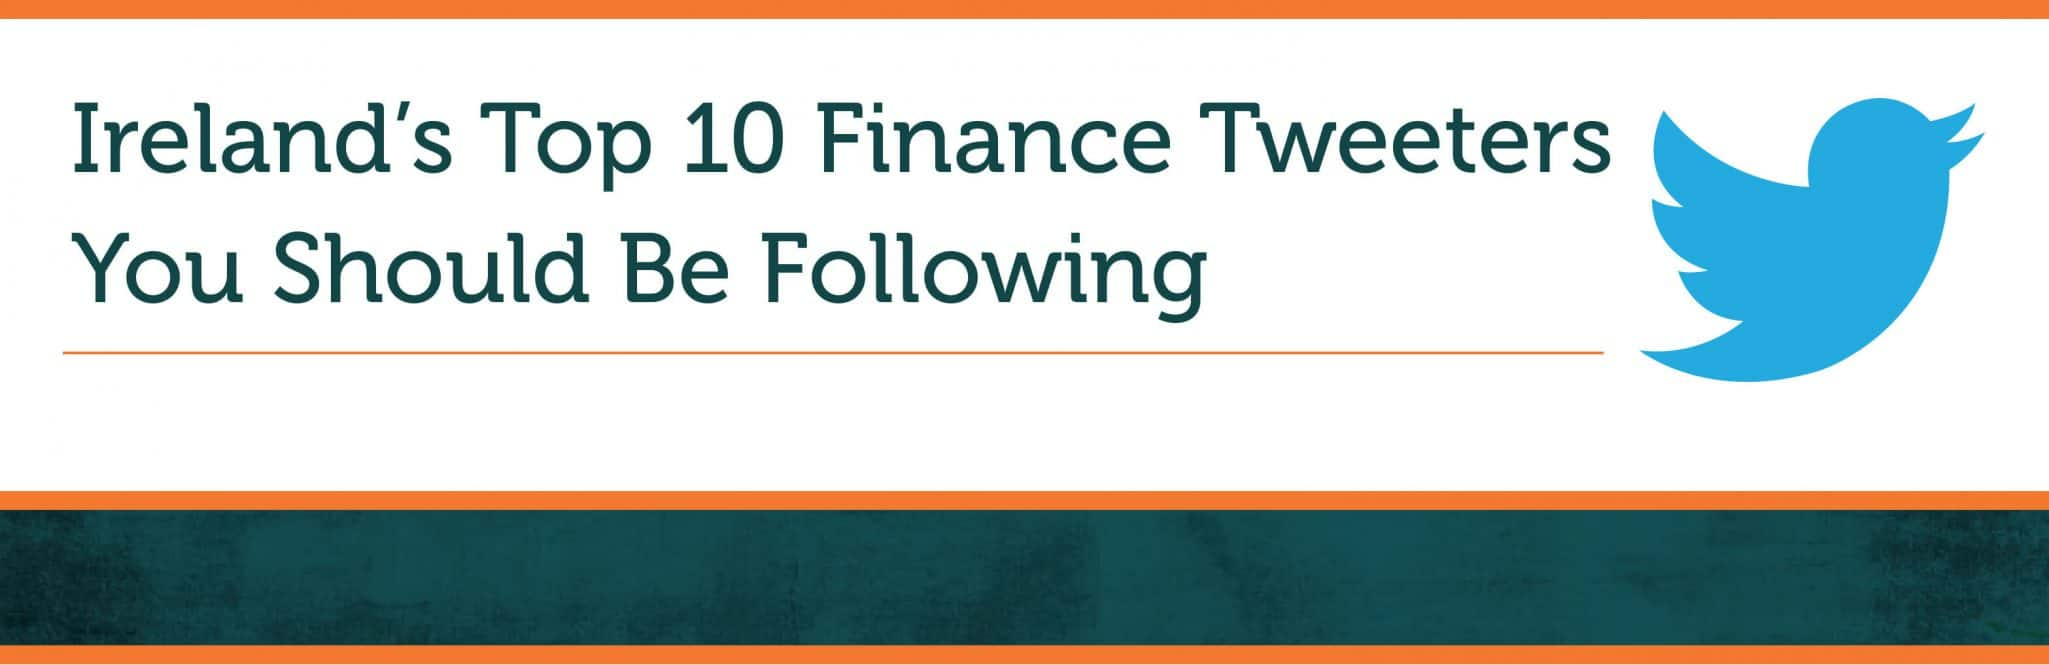 Ireland's Top 10 Finance Tweeters You Should Be Following